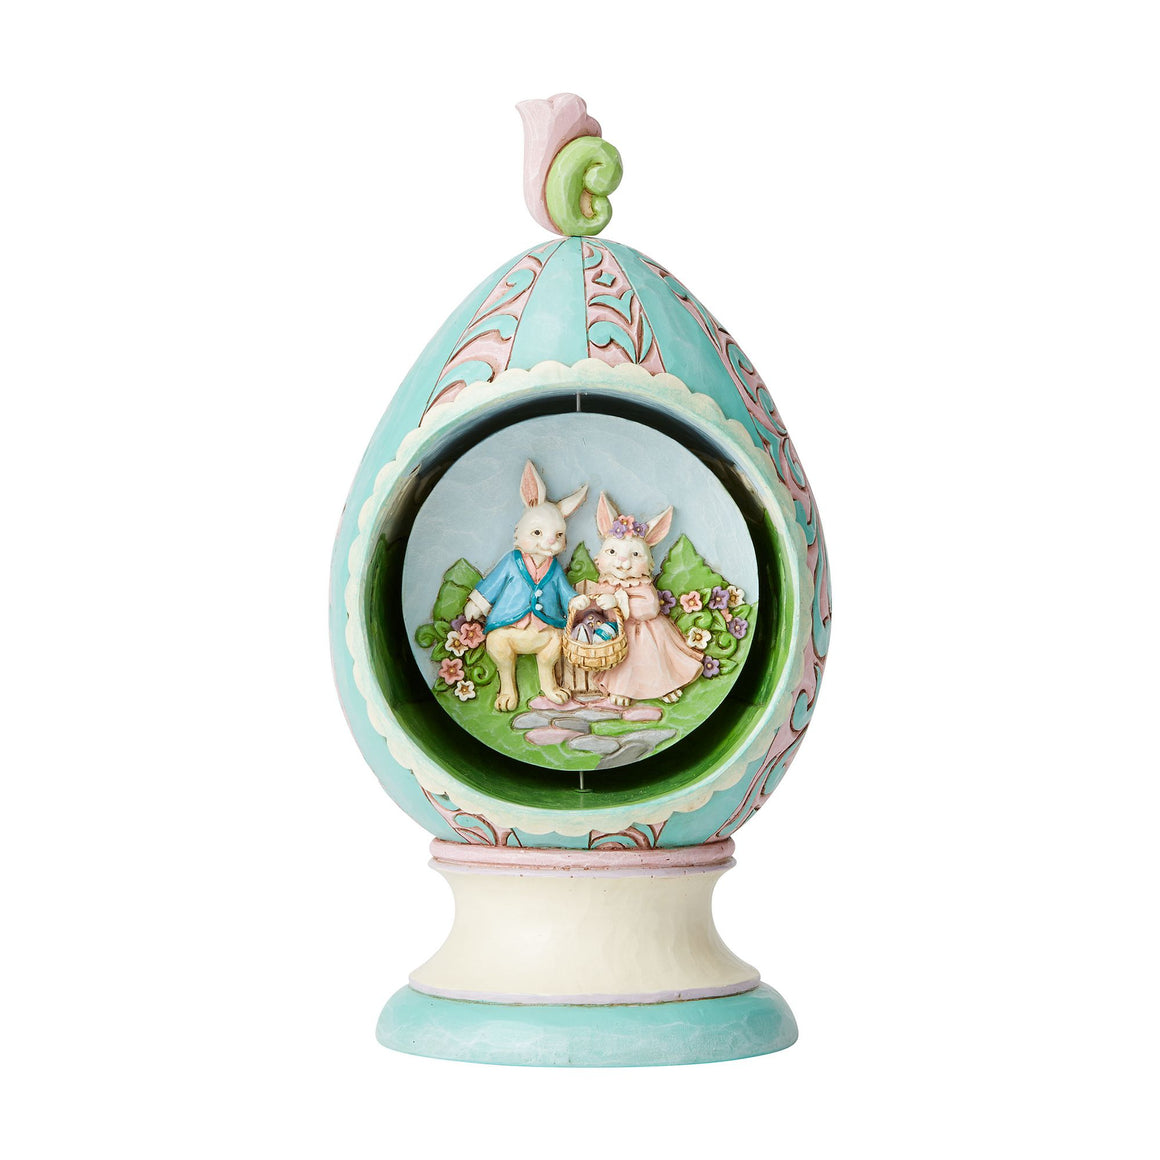 Revolving Egg with Bunnies and Chicks Scene Figurine - Heartwood Creek by Jim Shore